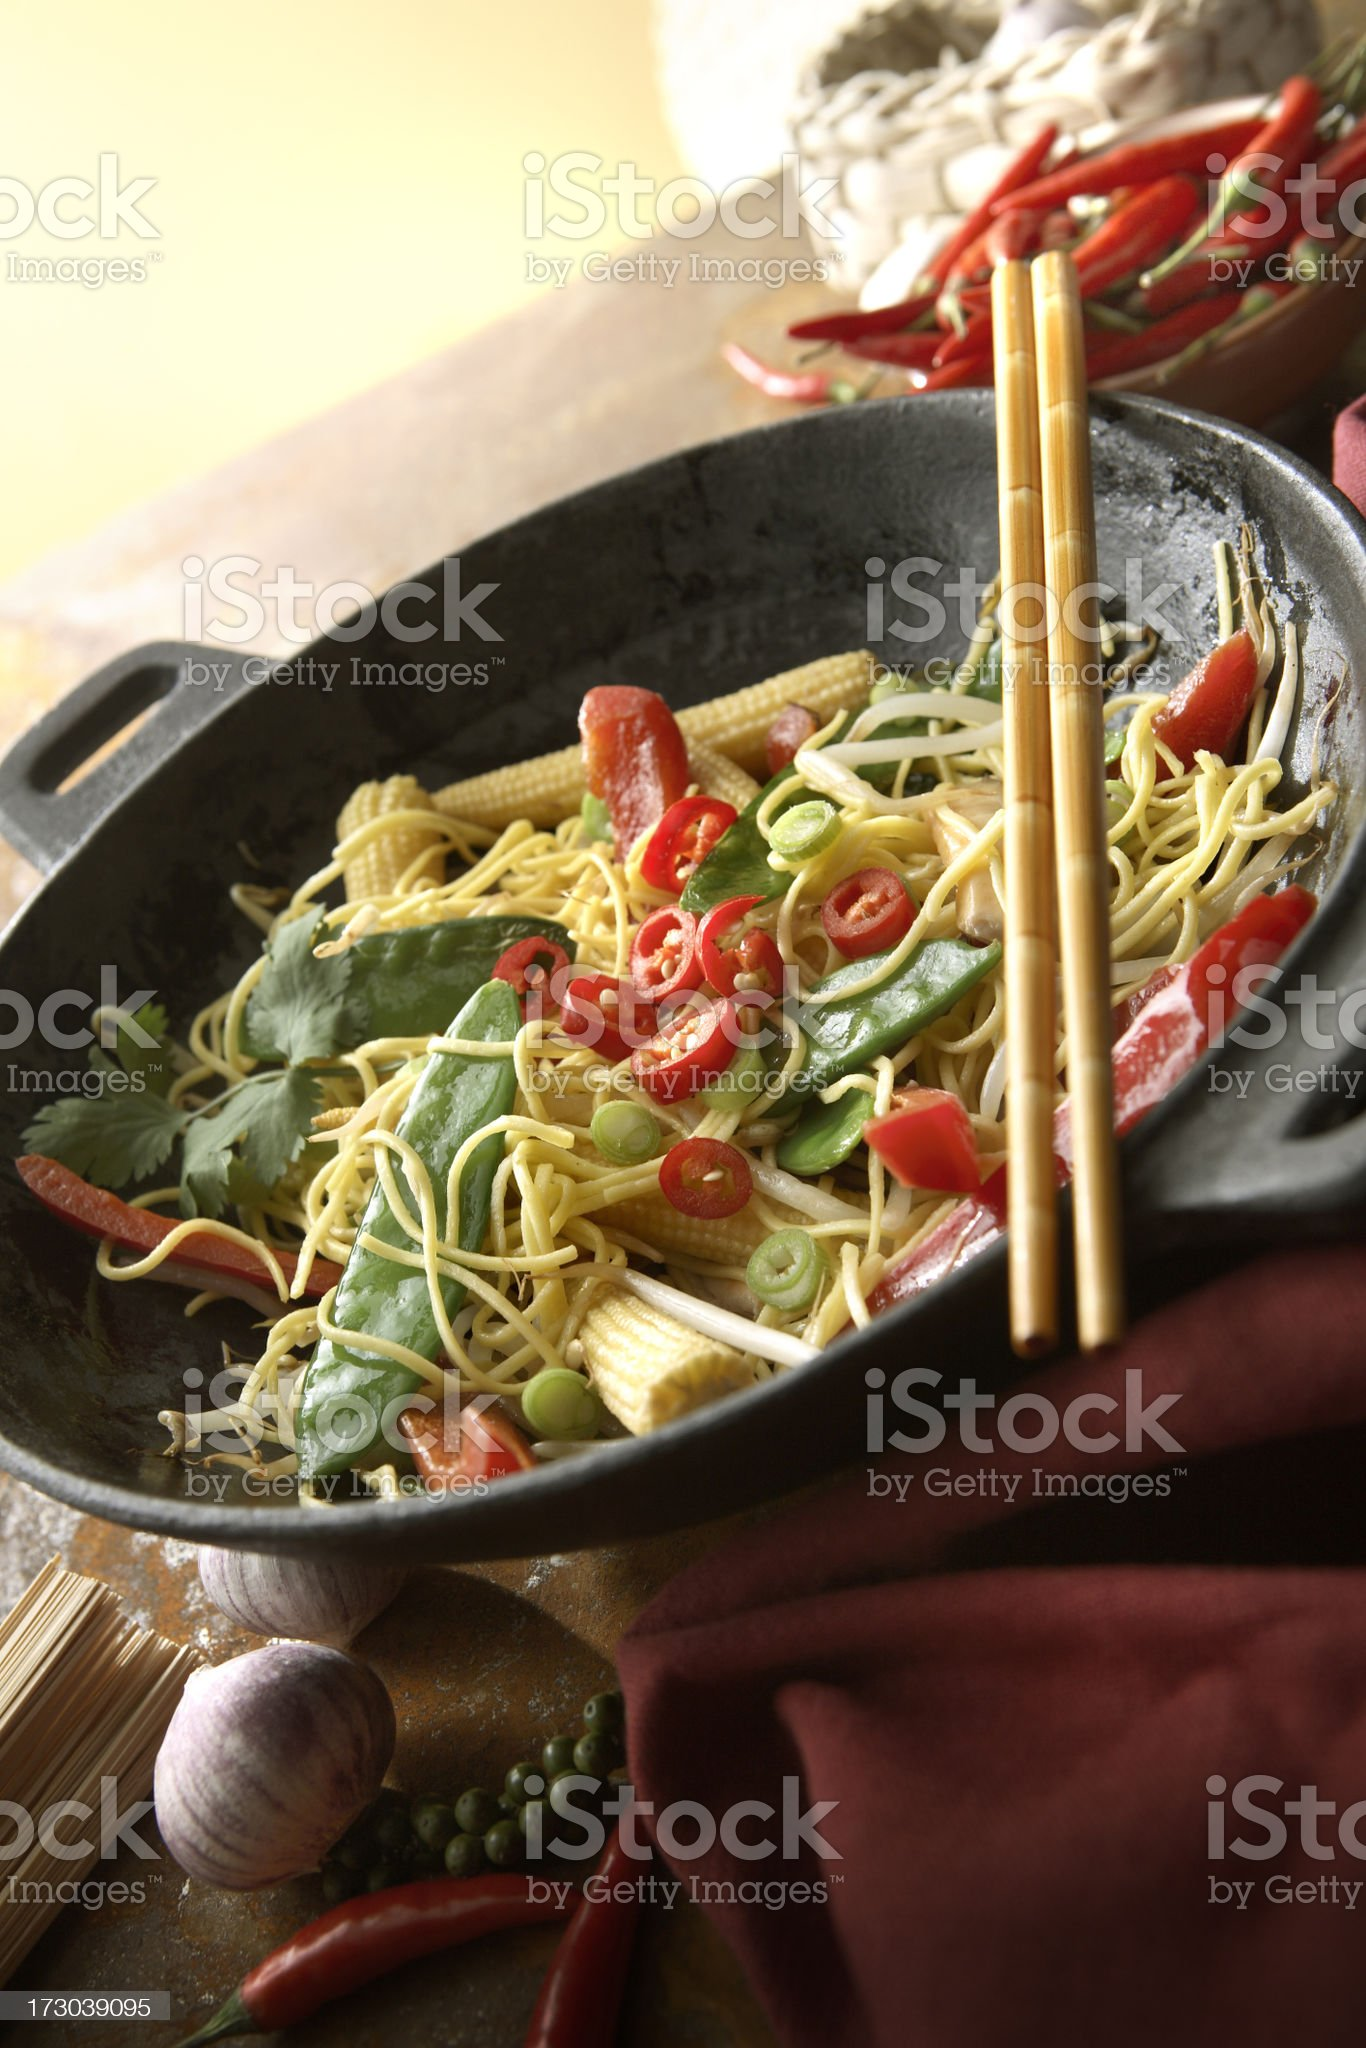 Asian Stills: Stir Fried Vegetables and Noodles royalty-free stock photo